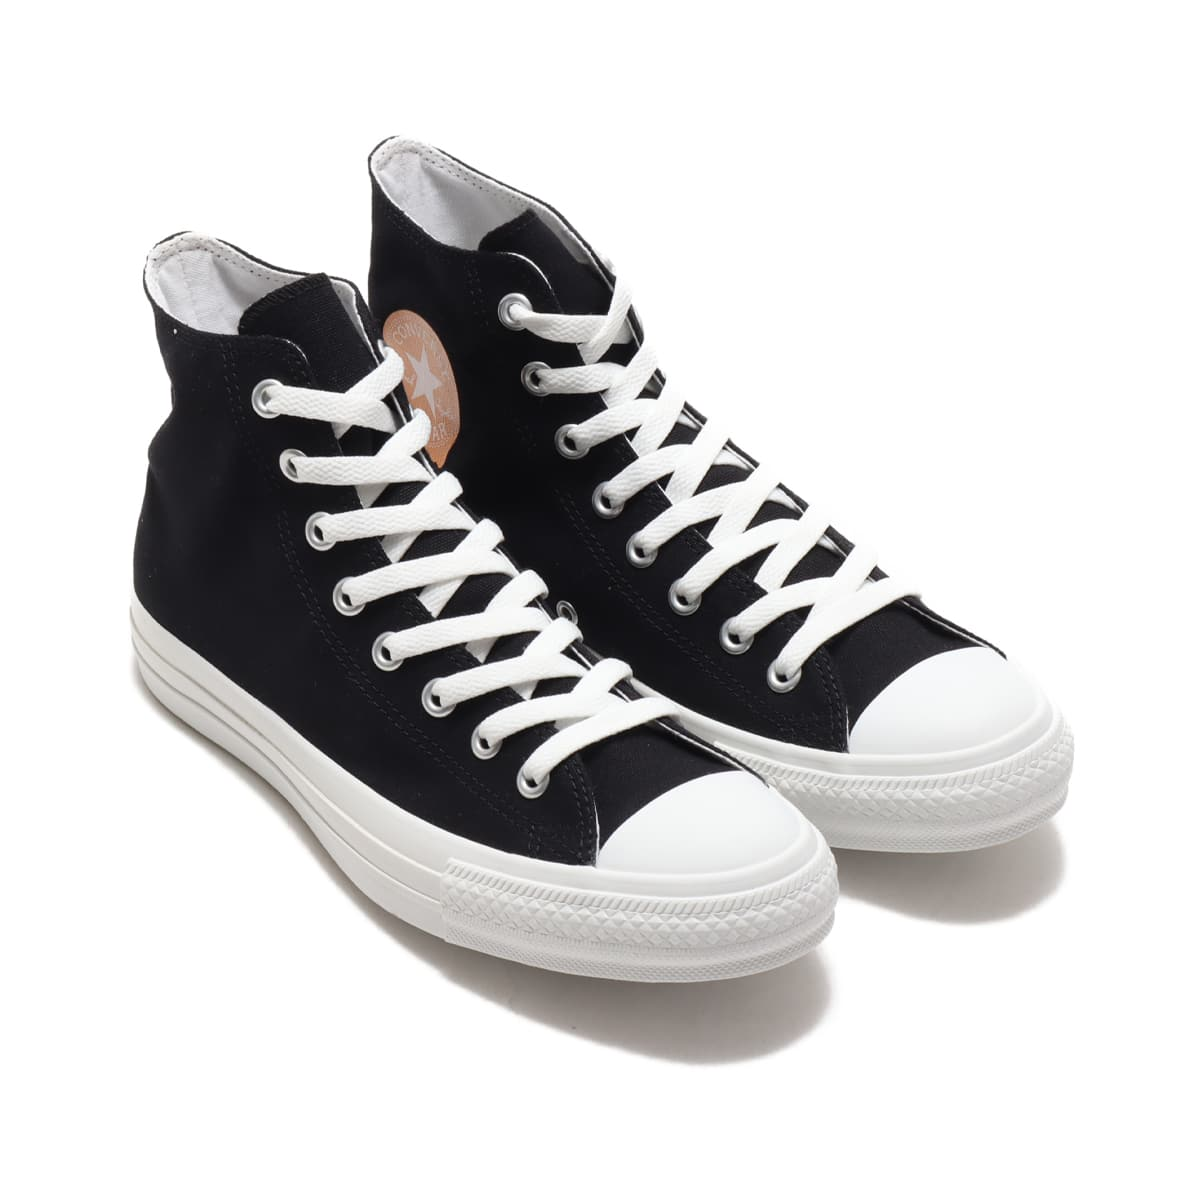 CONVERSE ALL STAR DRIPPATCH HI BLACK 20FW-I_photo_large